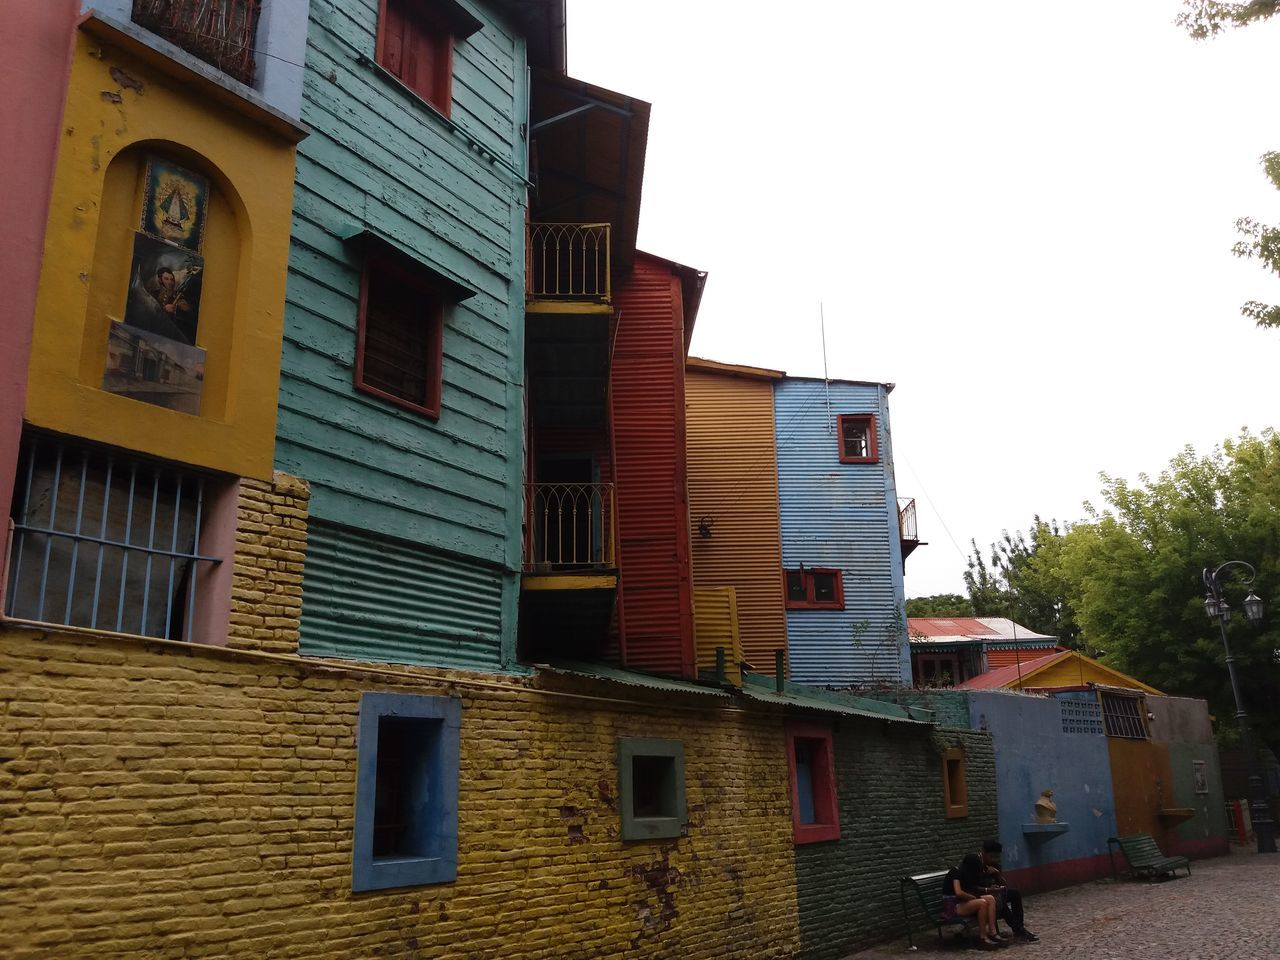 Caminito,La Boca,Buenos Aires,Argenti Architecture Building Exterior Art Point Of Interest Old Buildings Turistic Argentina La Boca Caminito House Architecture Colorful City Historic Old Tango Travel Destinations Street Carlos Gardel na